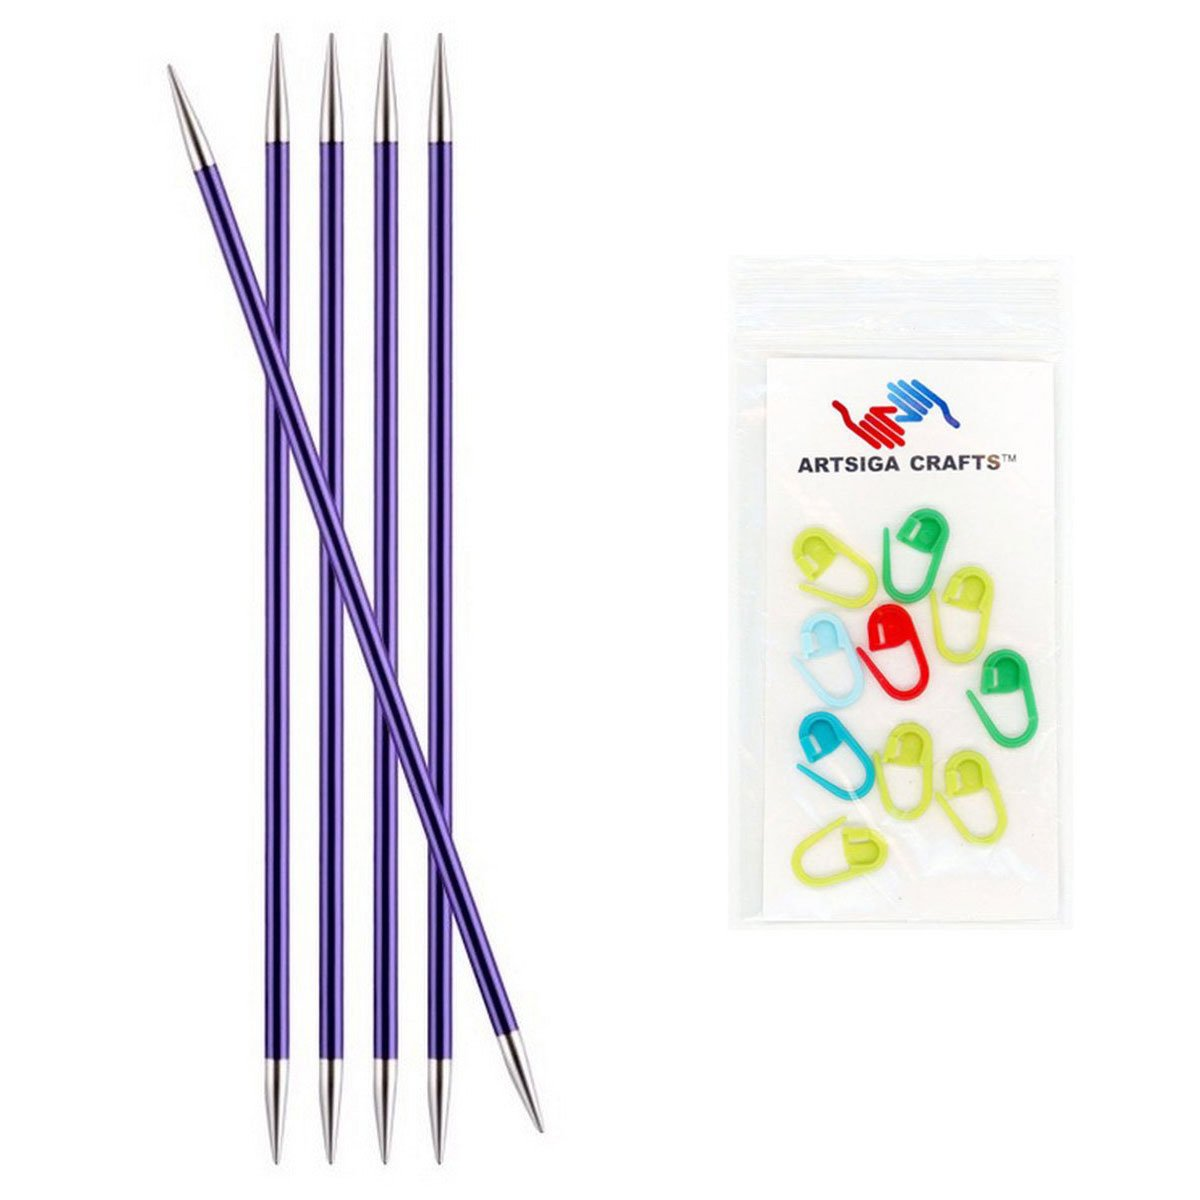 Bundle with 10 Artsiga Crafts Stitch Markers 140003 Knitters Pride Zing Double Pointed Knitting Needles 6in Size US 1.5 2.5mm